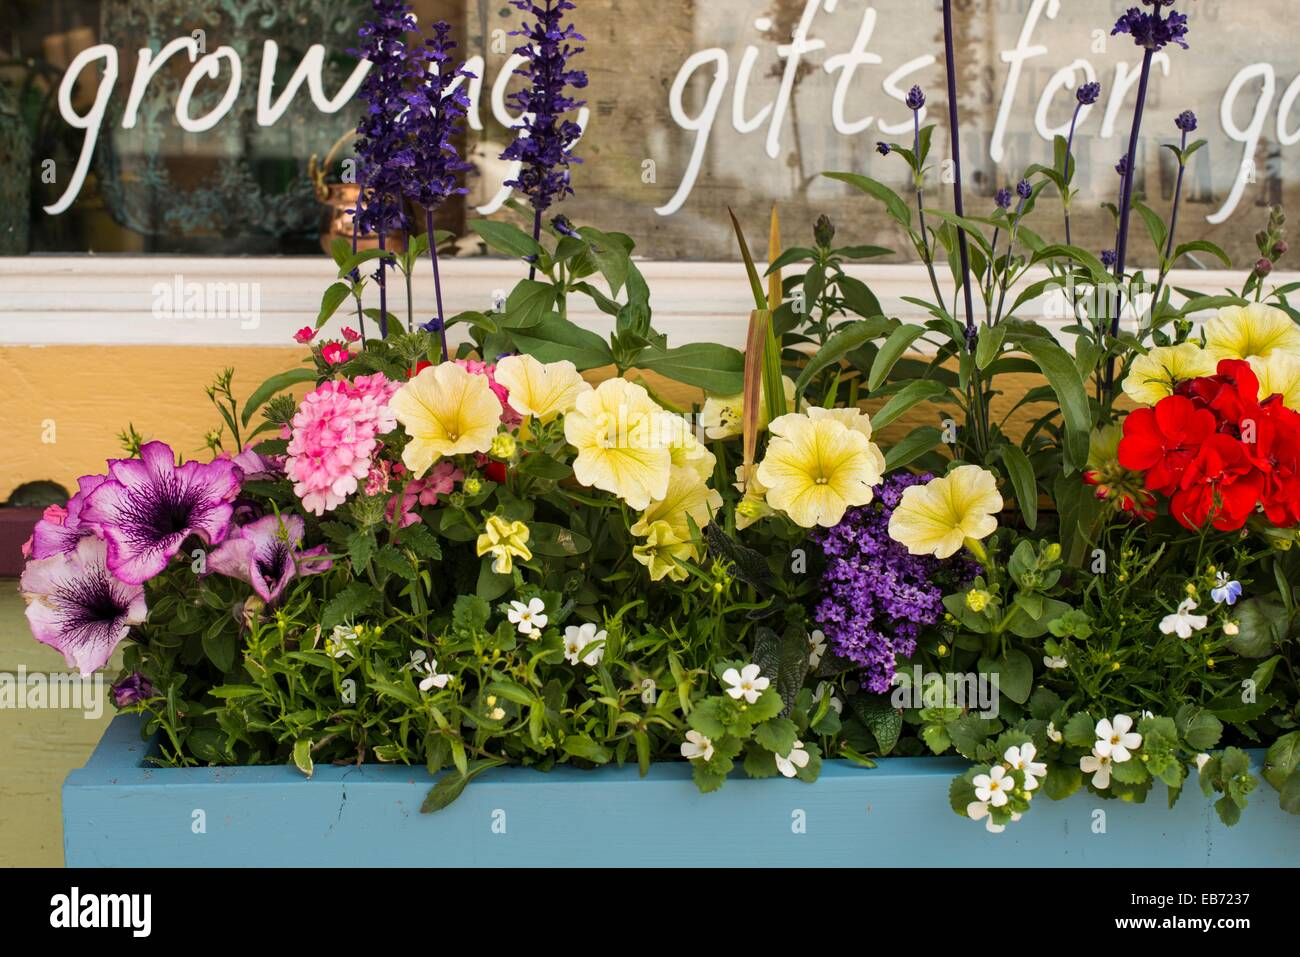 A Window Box Planter With Flowers Outside A Garden Shop In Ladner, BC,  Canada.